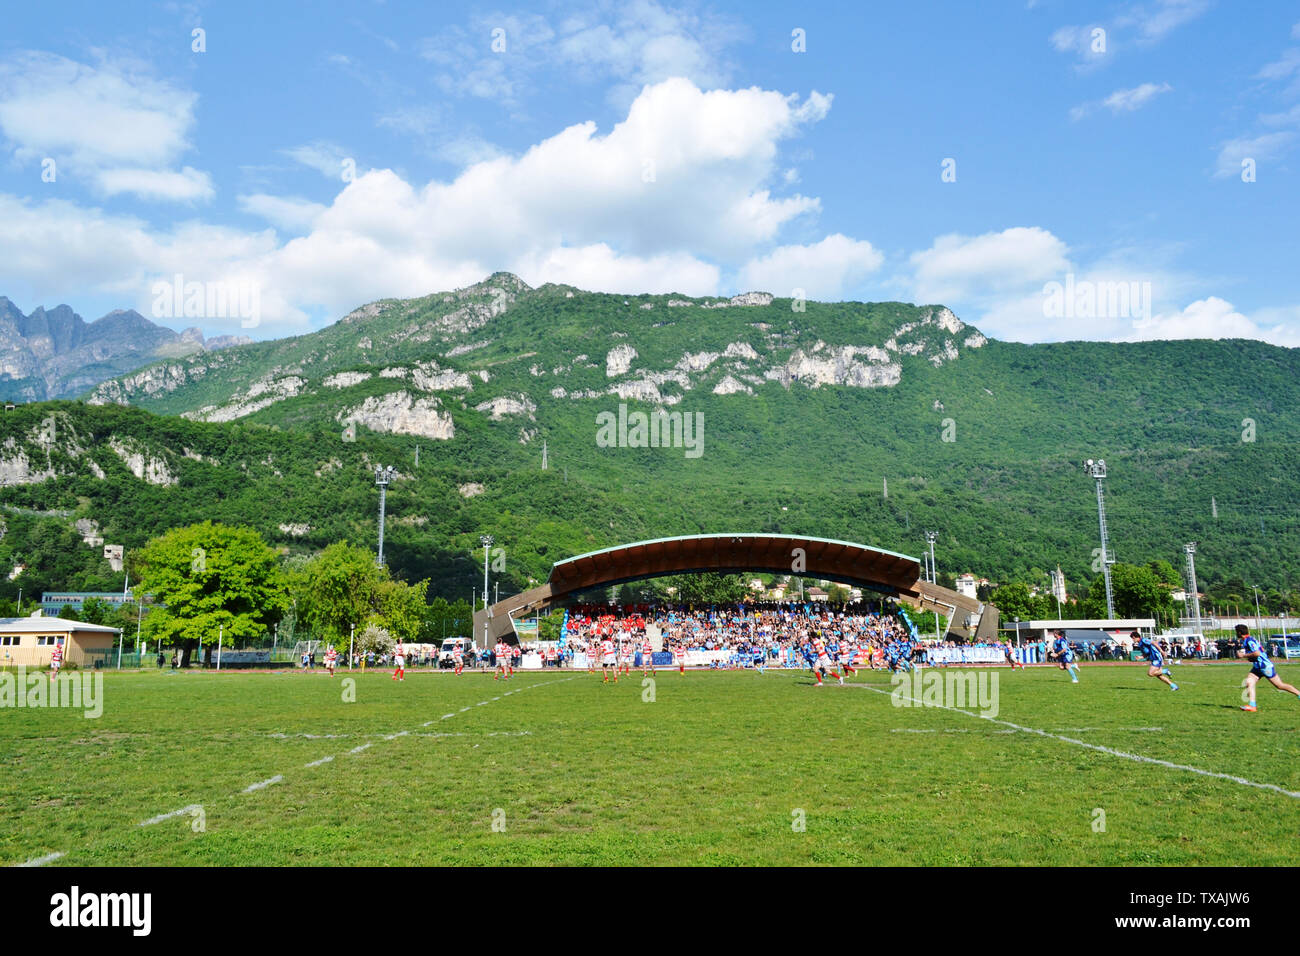 Lecco/Italy - May 24, 2015: Mountain Resegone over Lecco and the rugby match between Rugby Lecco and ASD Rugby Casale on the sports field Lecco Bione. Stock Photo